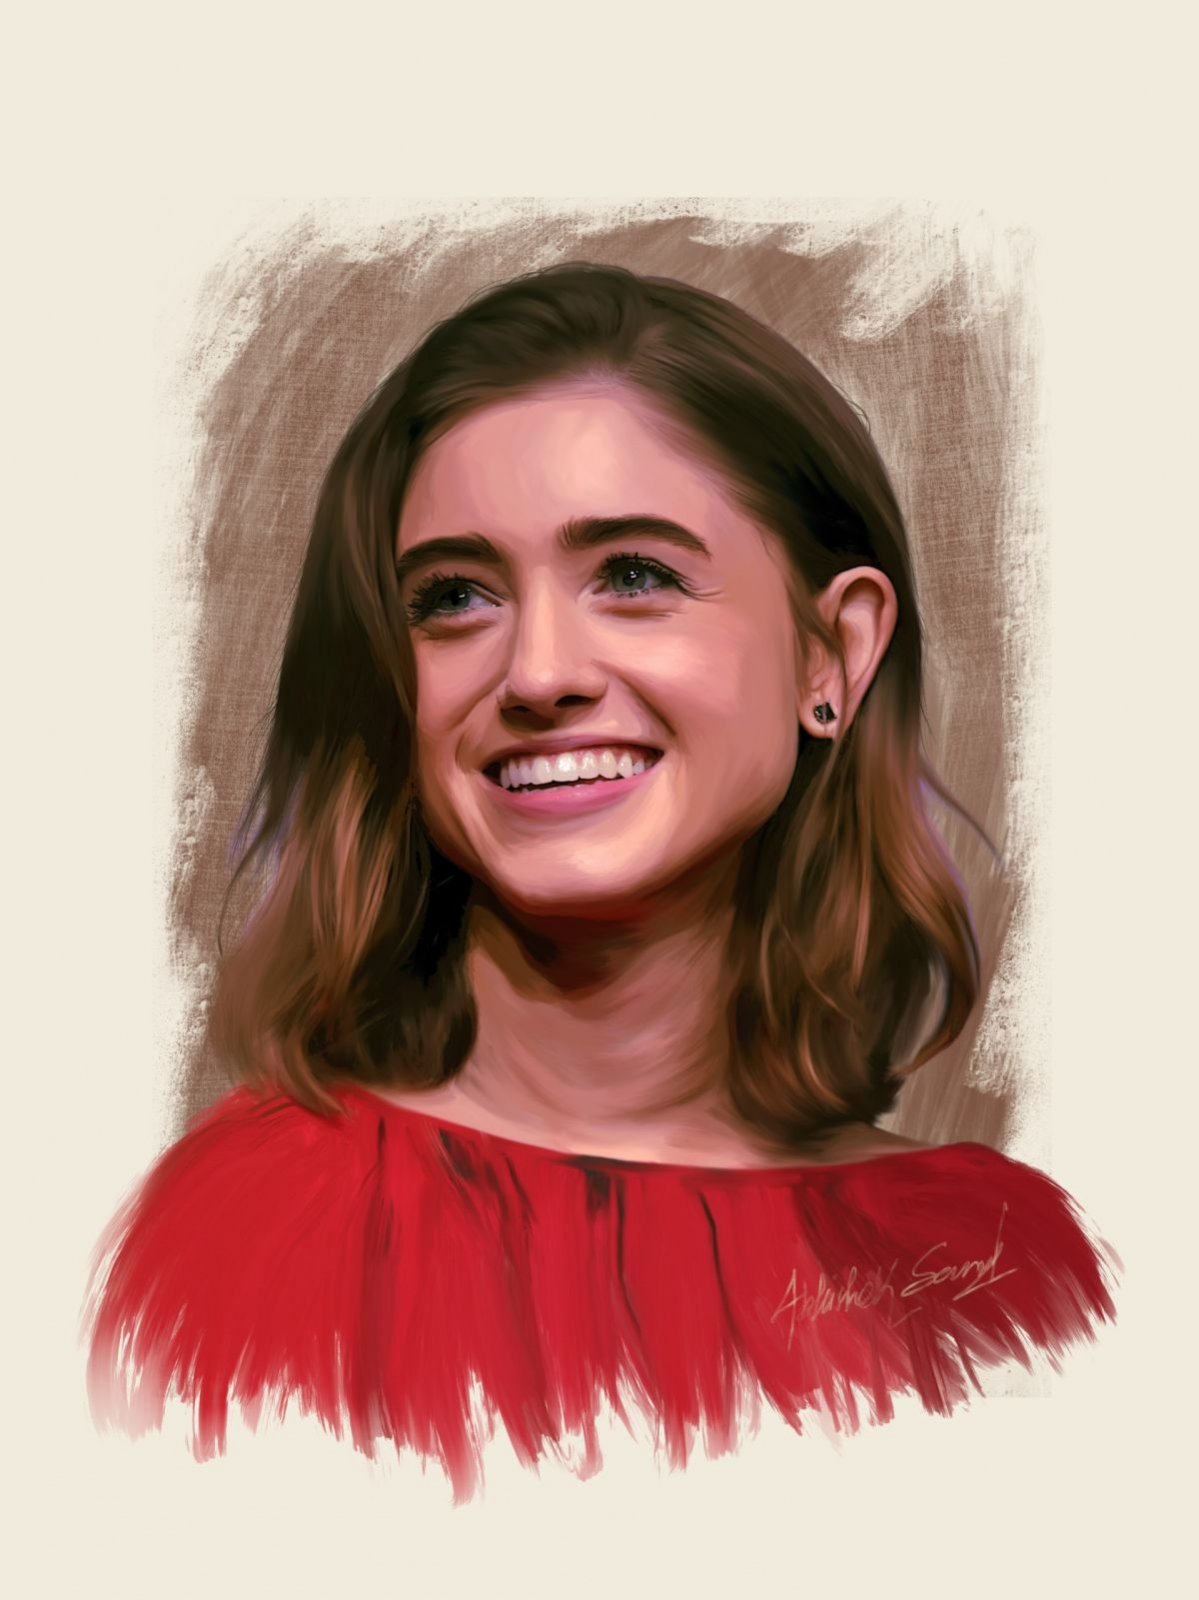 digital painting celebrity portrait natalia dyer by abhishek samal